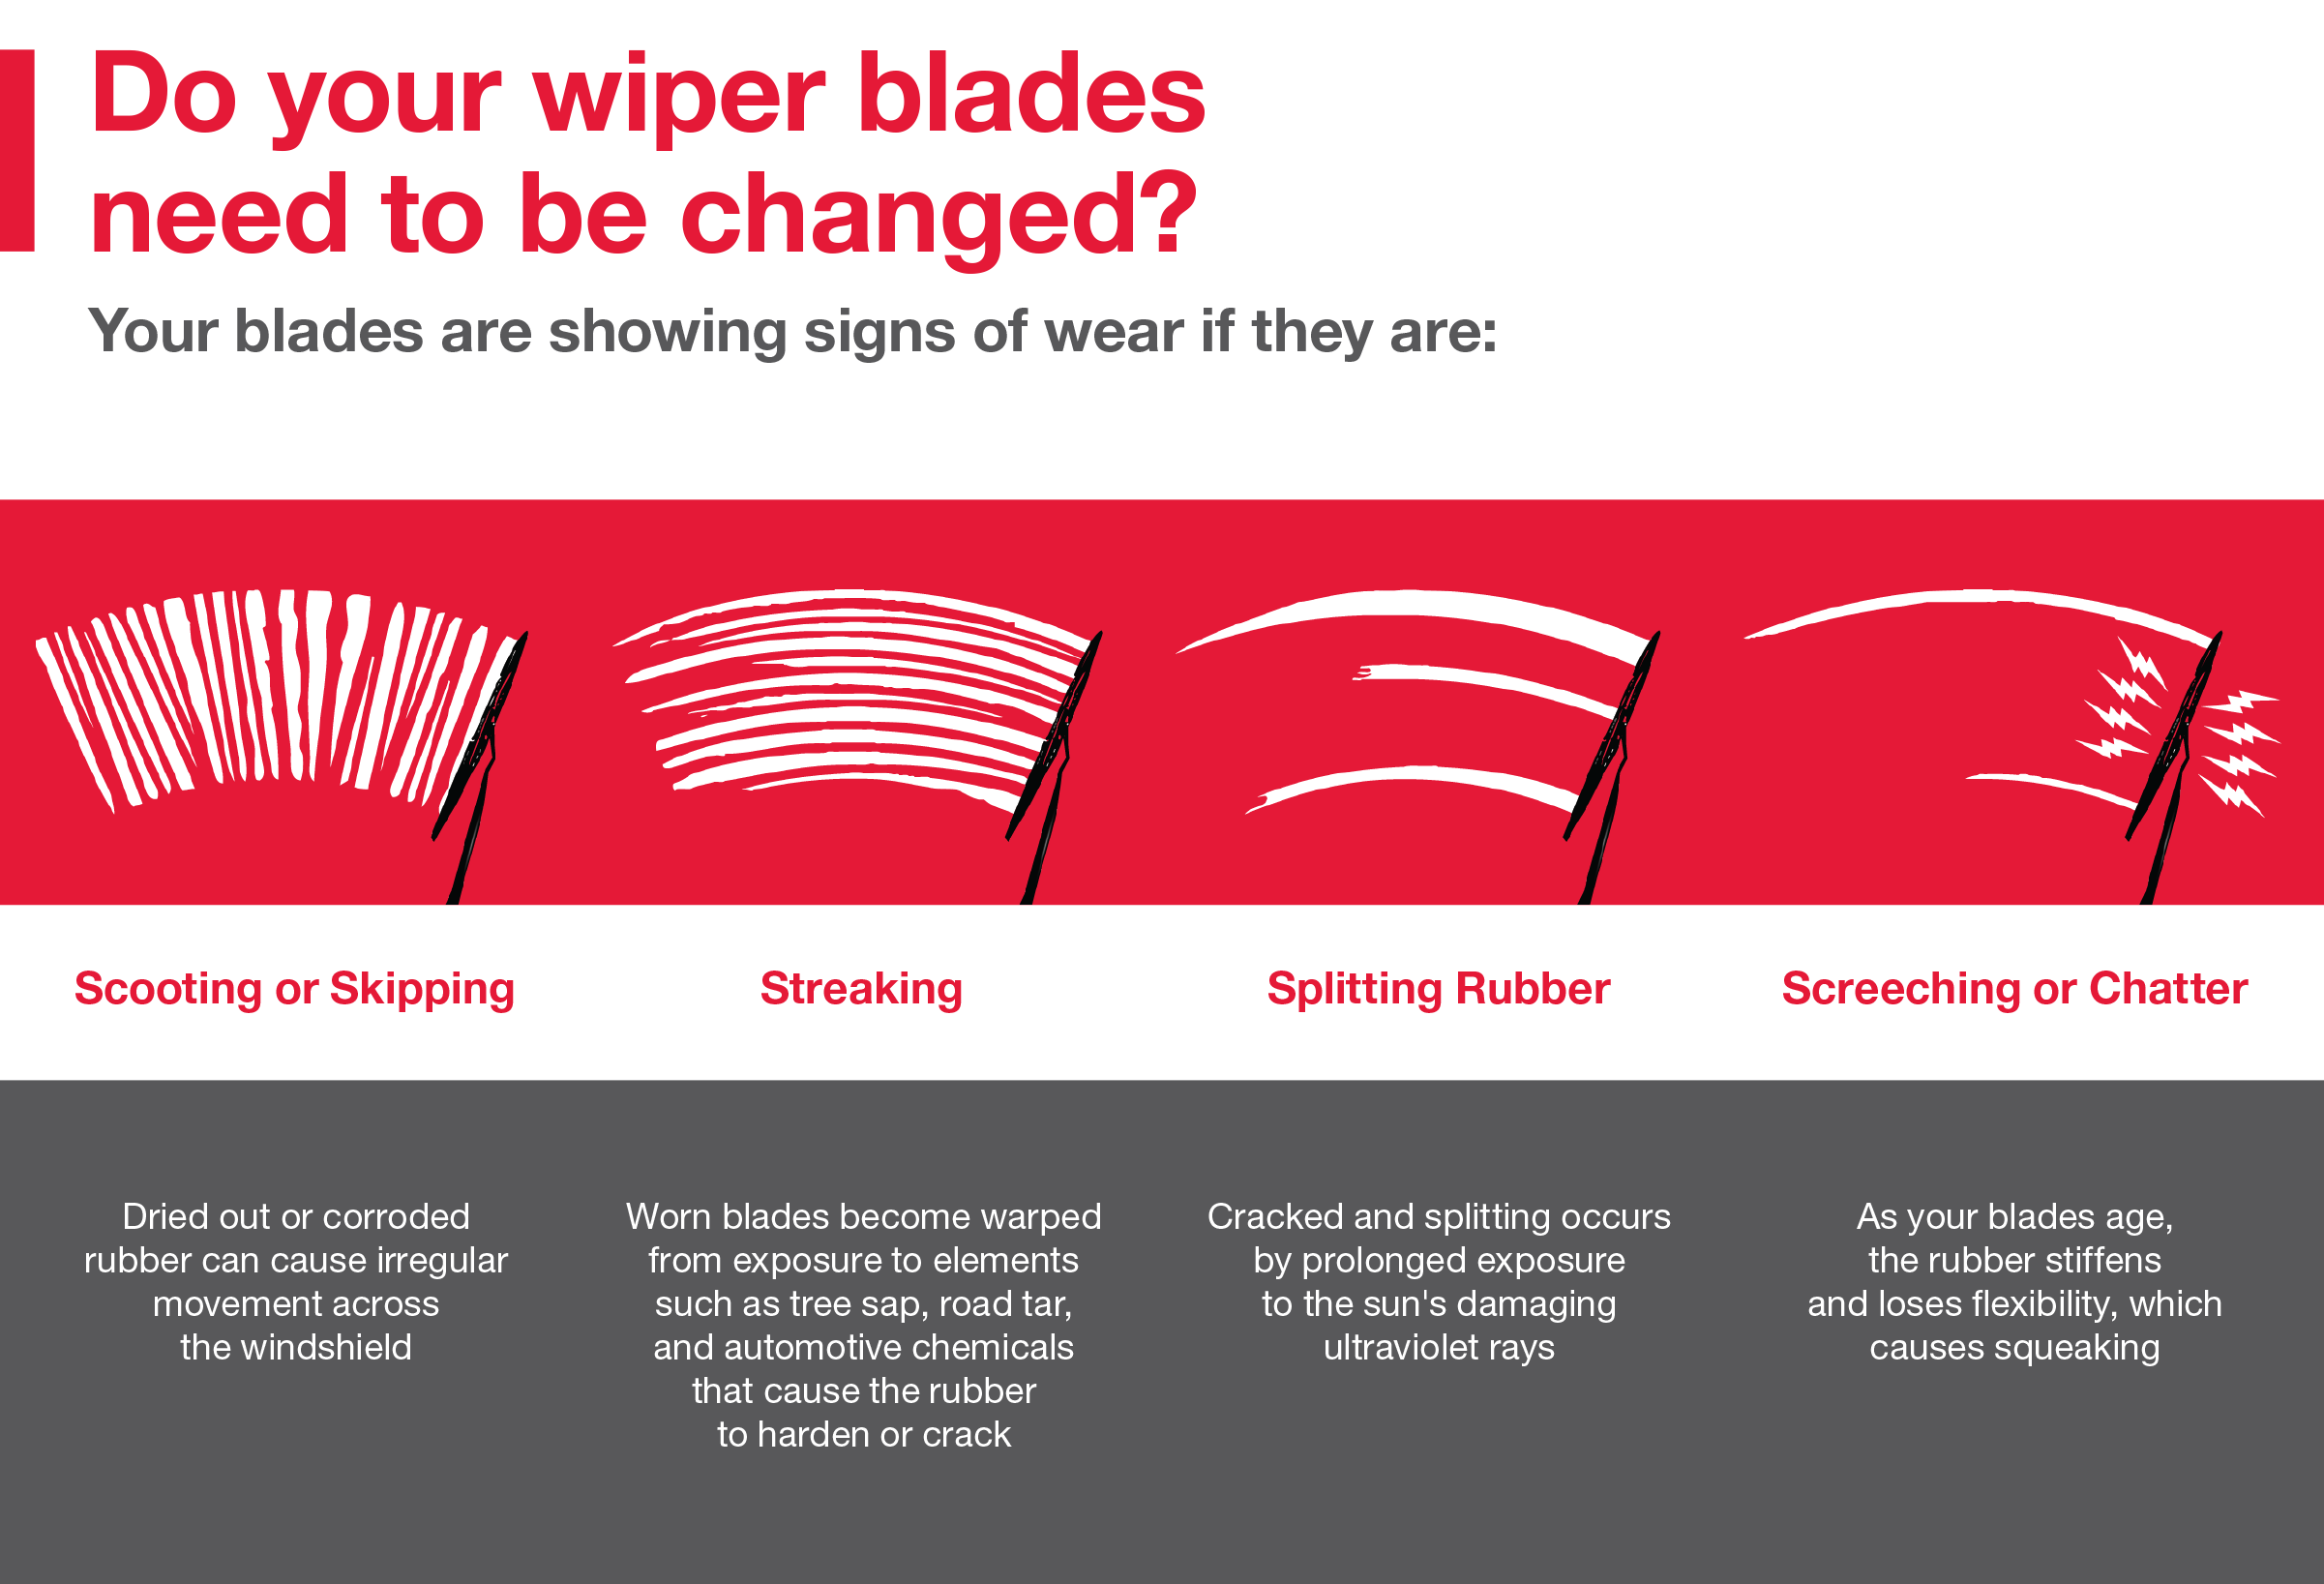 Do your wiper blades need to be changed? Call your local dealer for more info: 833-315-3922